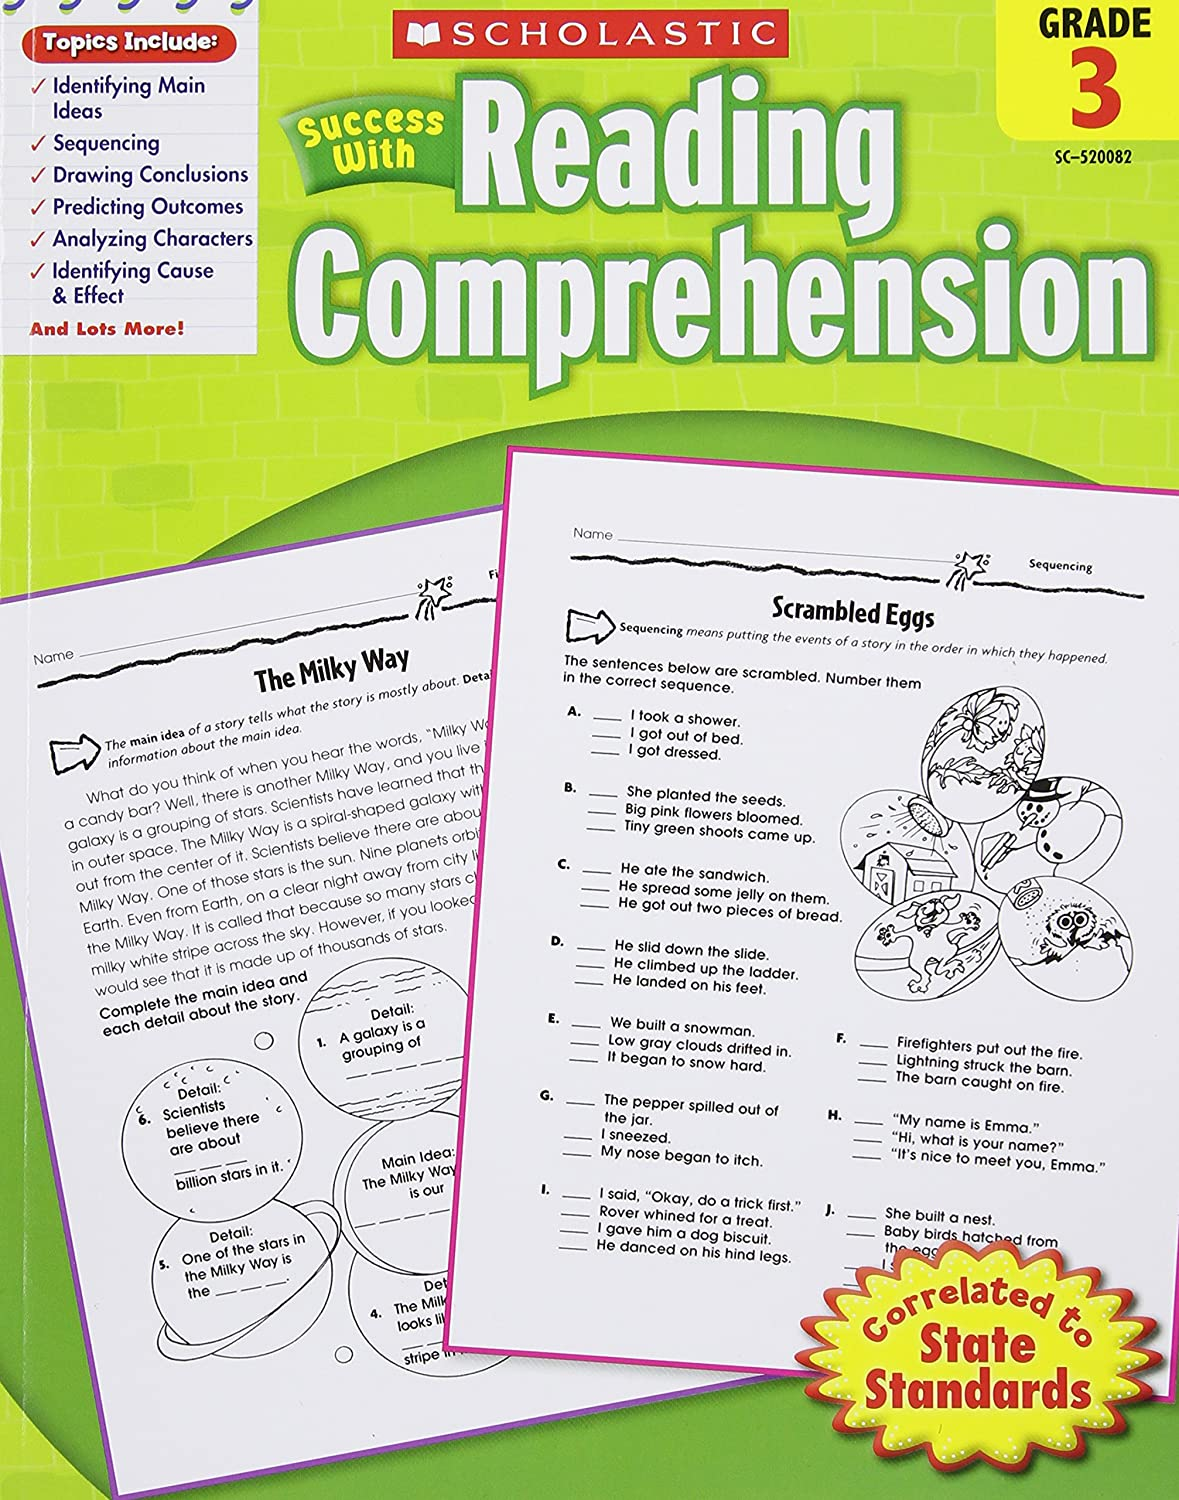 Worksheet Grade 2 Reading Comprehension scholastic success with reading comprehension grade 2 9780545200837 amazon com books